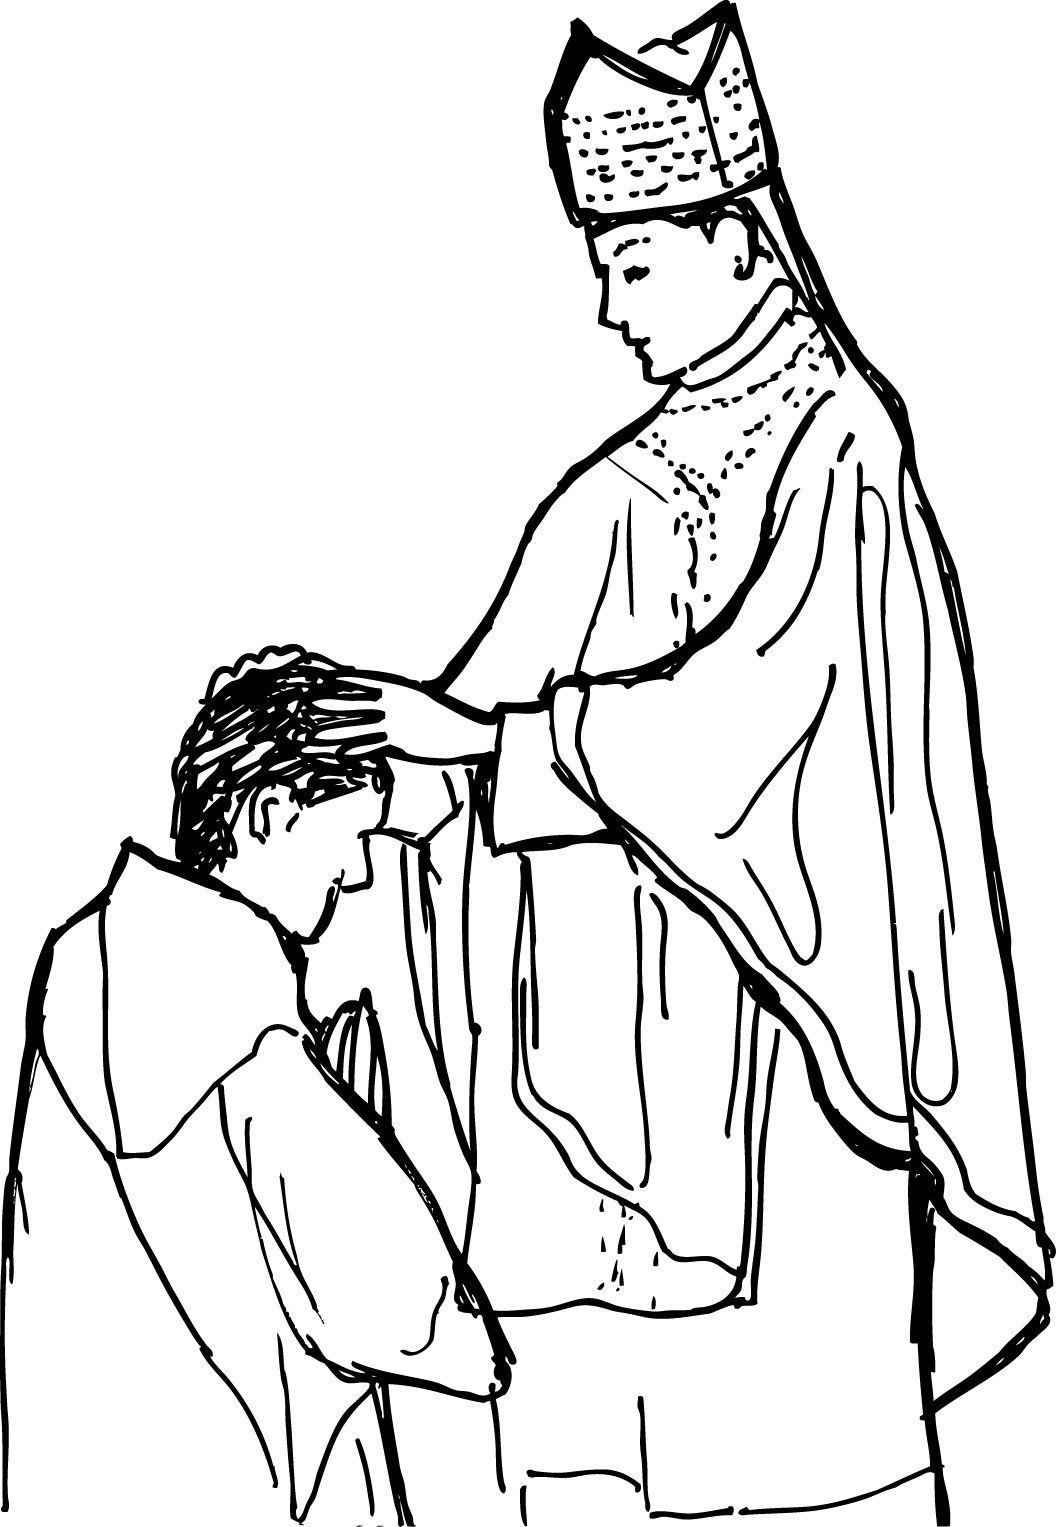 holy orders coloring page | sacraments of service | pinterest ... - Coloring Pages Catholic Sacraments